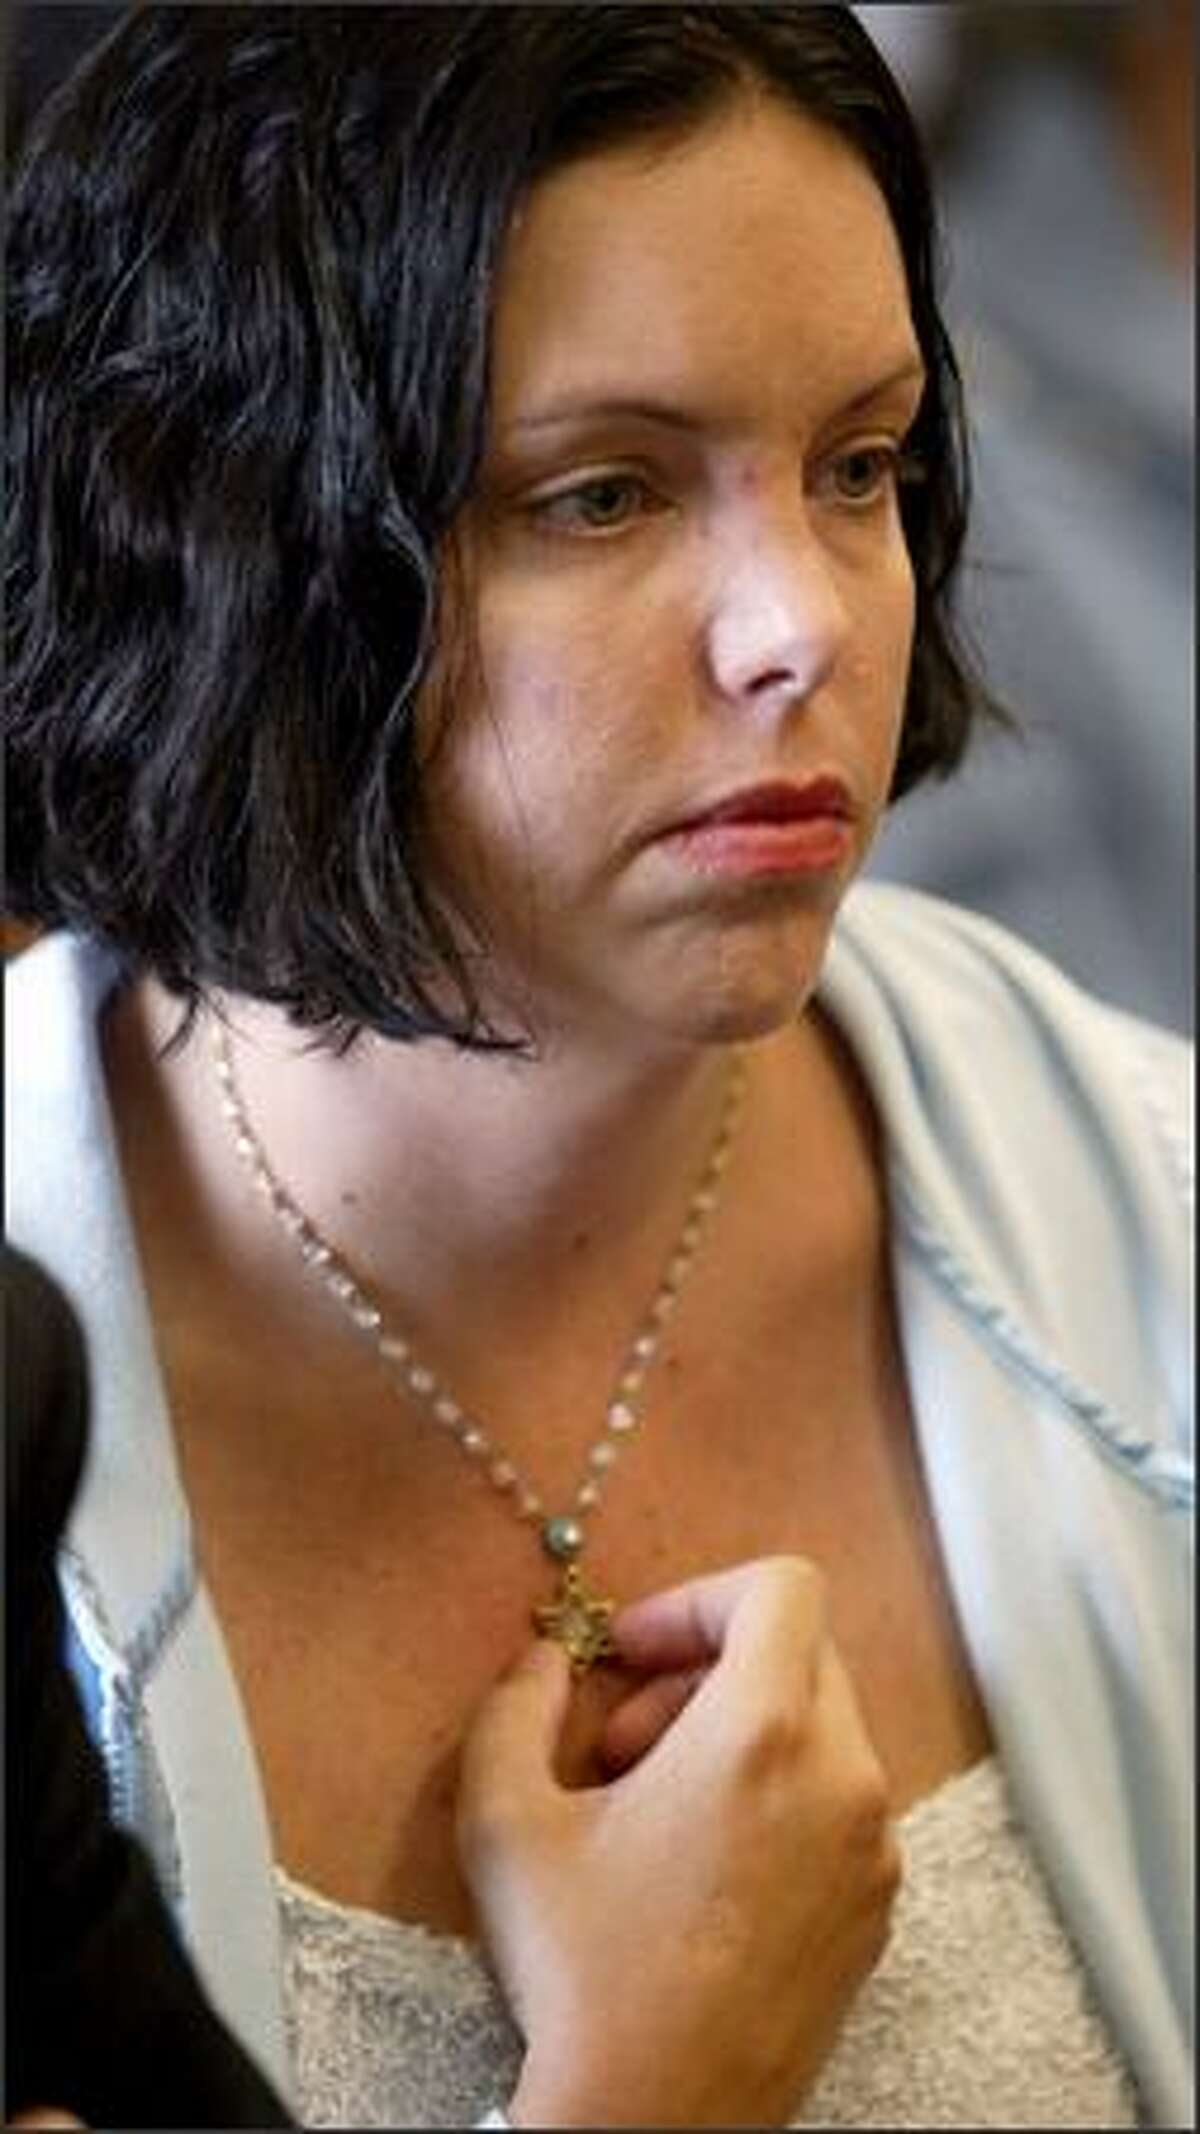 Jewish Federation employee Tammy Kaiser, who escaped the shooting by jumping out a window, listens in court.